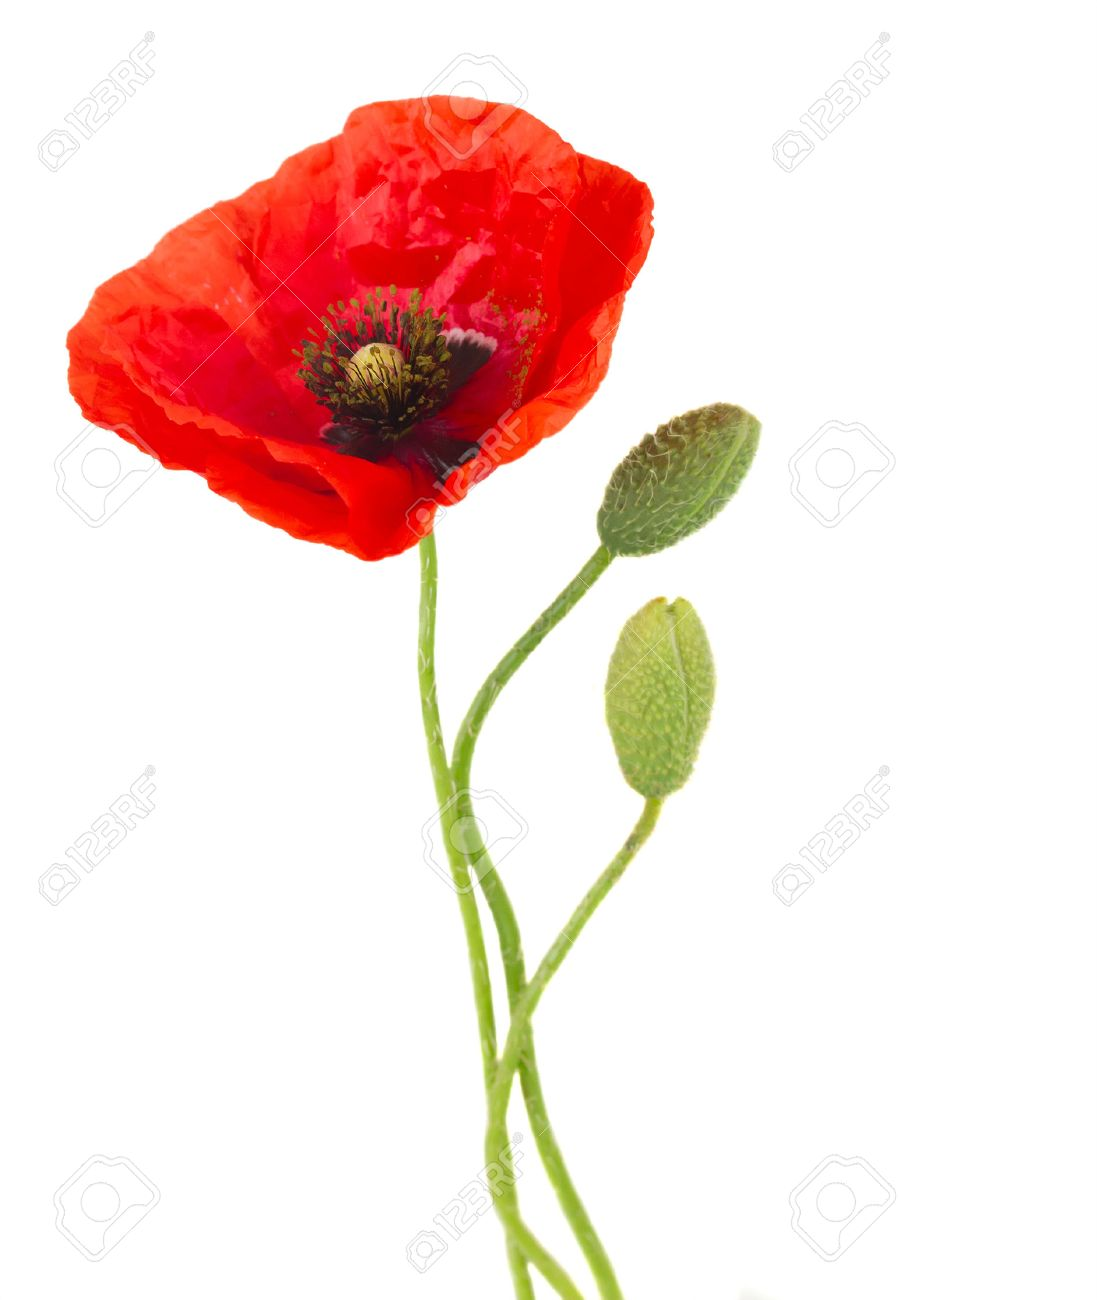 One Poppy Flower With Buds Isolated On White Background Stock Photo